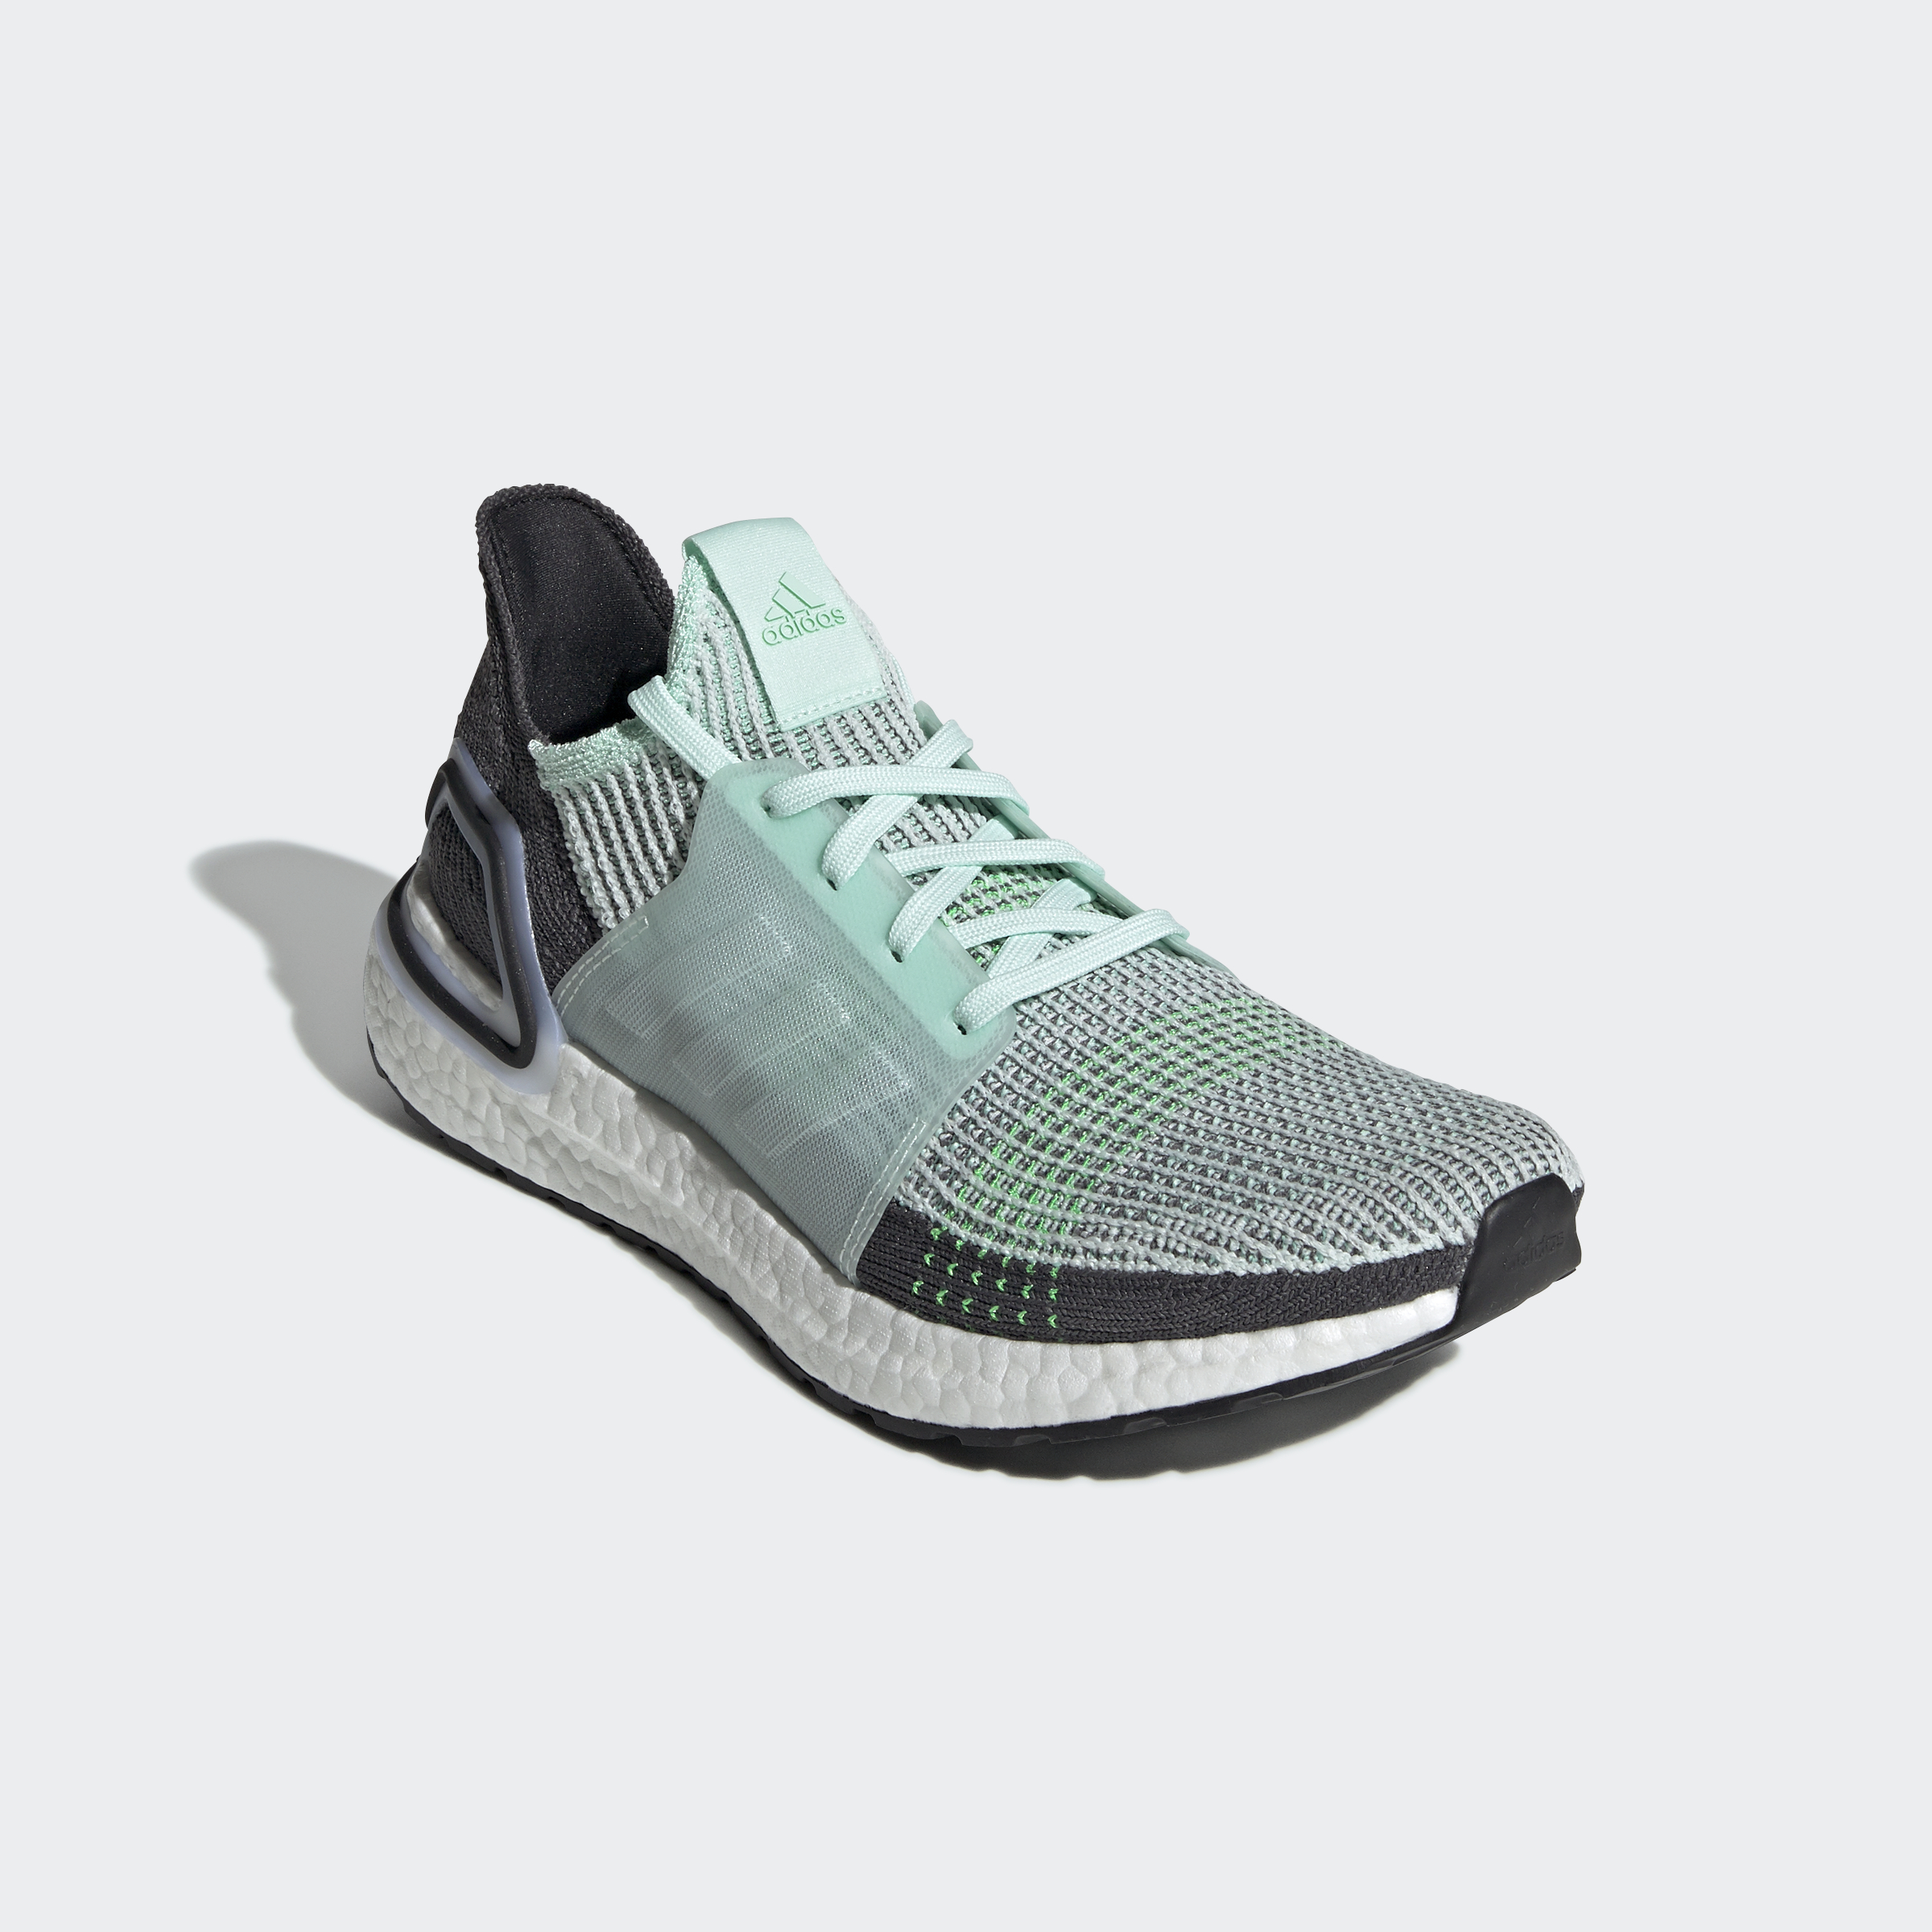 adidas-Ultraboost-19-Shoes-Athletic-amp-Sneakers thumbnail 42